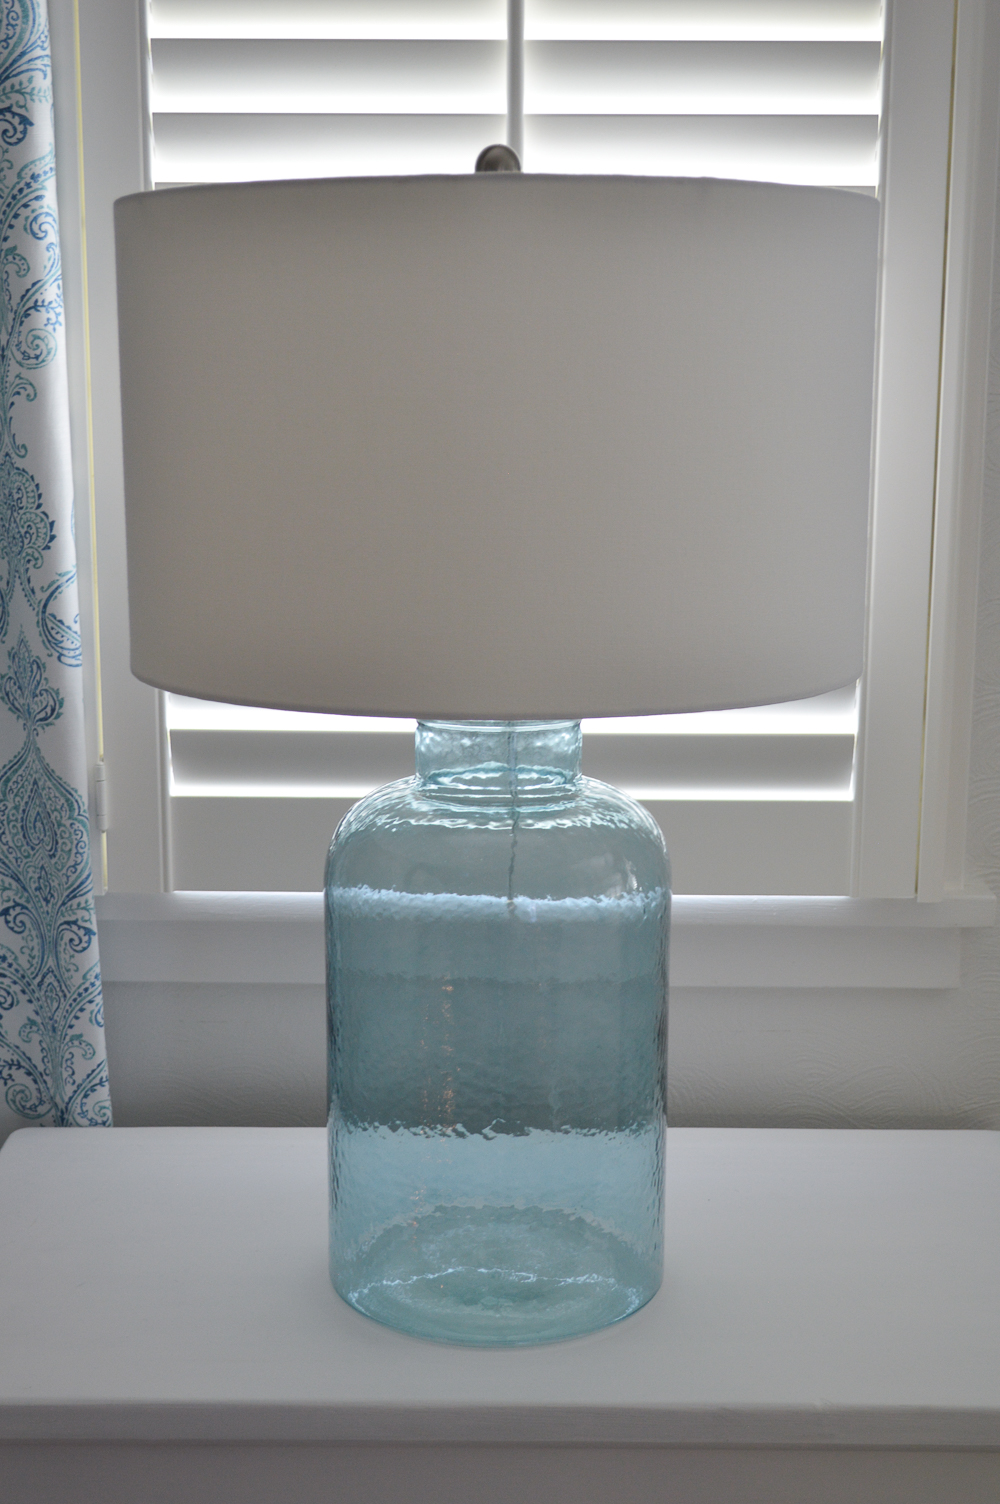 Aqua Blue Cottage Home Decorating Ideas at Fox Hollow Cottage blog - www.foxhollowcottage.com - Glass Lamp